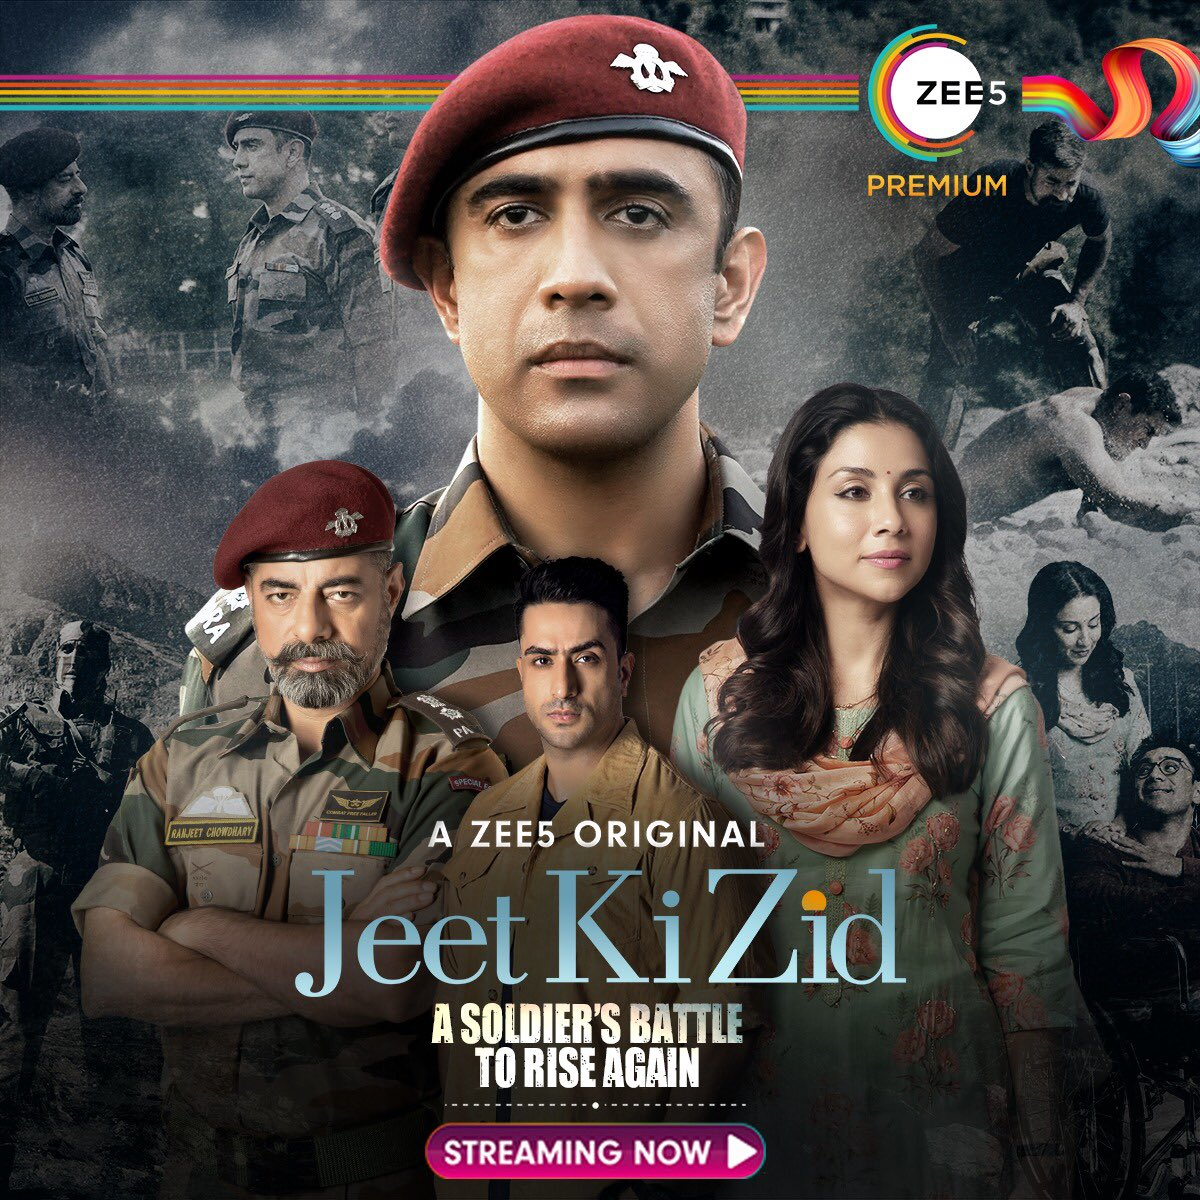 The true story of a living legend whose willpower redefined impossible. #JeetKiZid is Streaming Now    @theamitsadh #AmritaPuri @freshlimefilms @boneykapoor @BayViewProjOffl @akash77 @JoyArunava @sushant_says @AlyGoni @vish2vish @ZEE5Premium